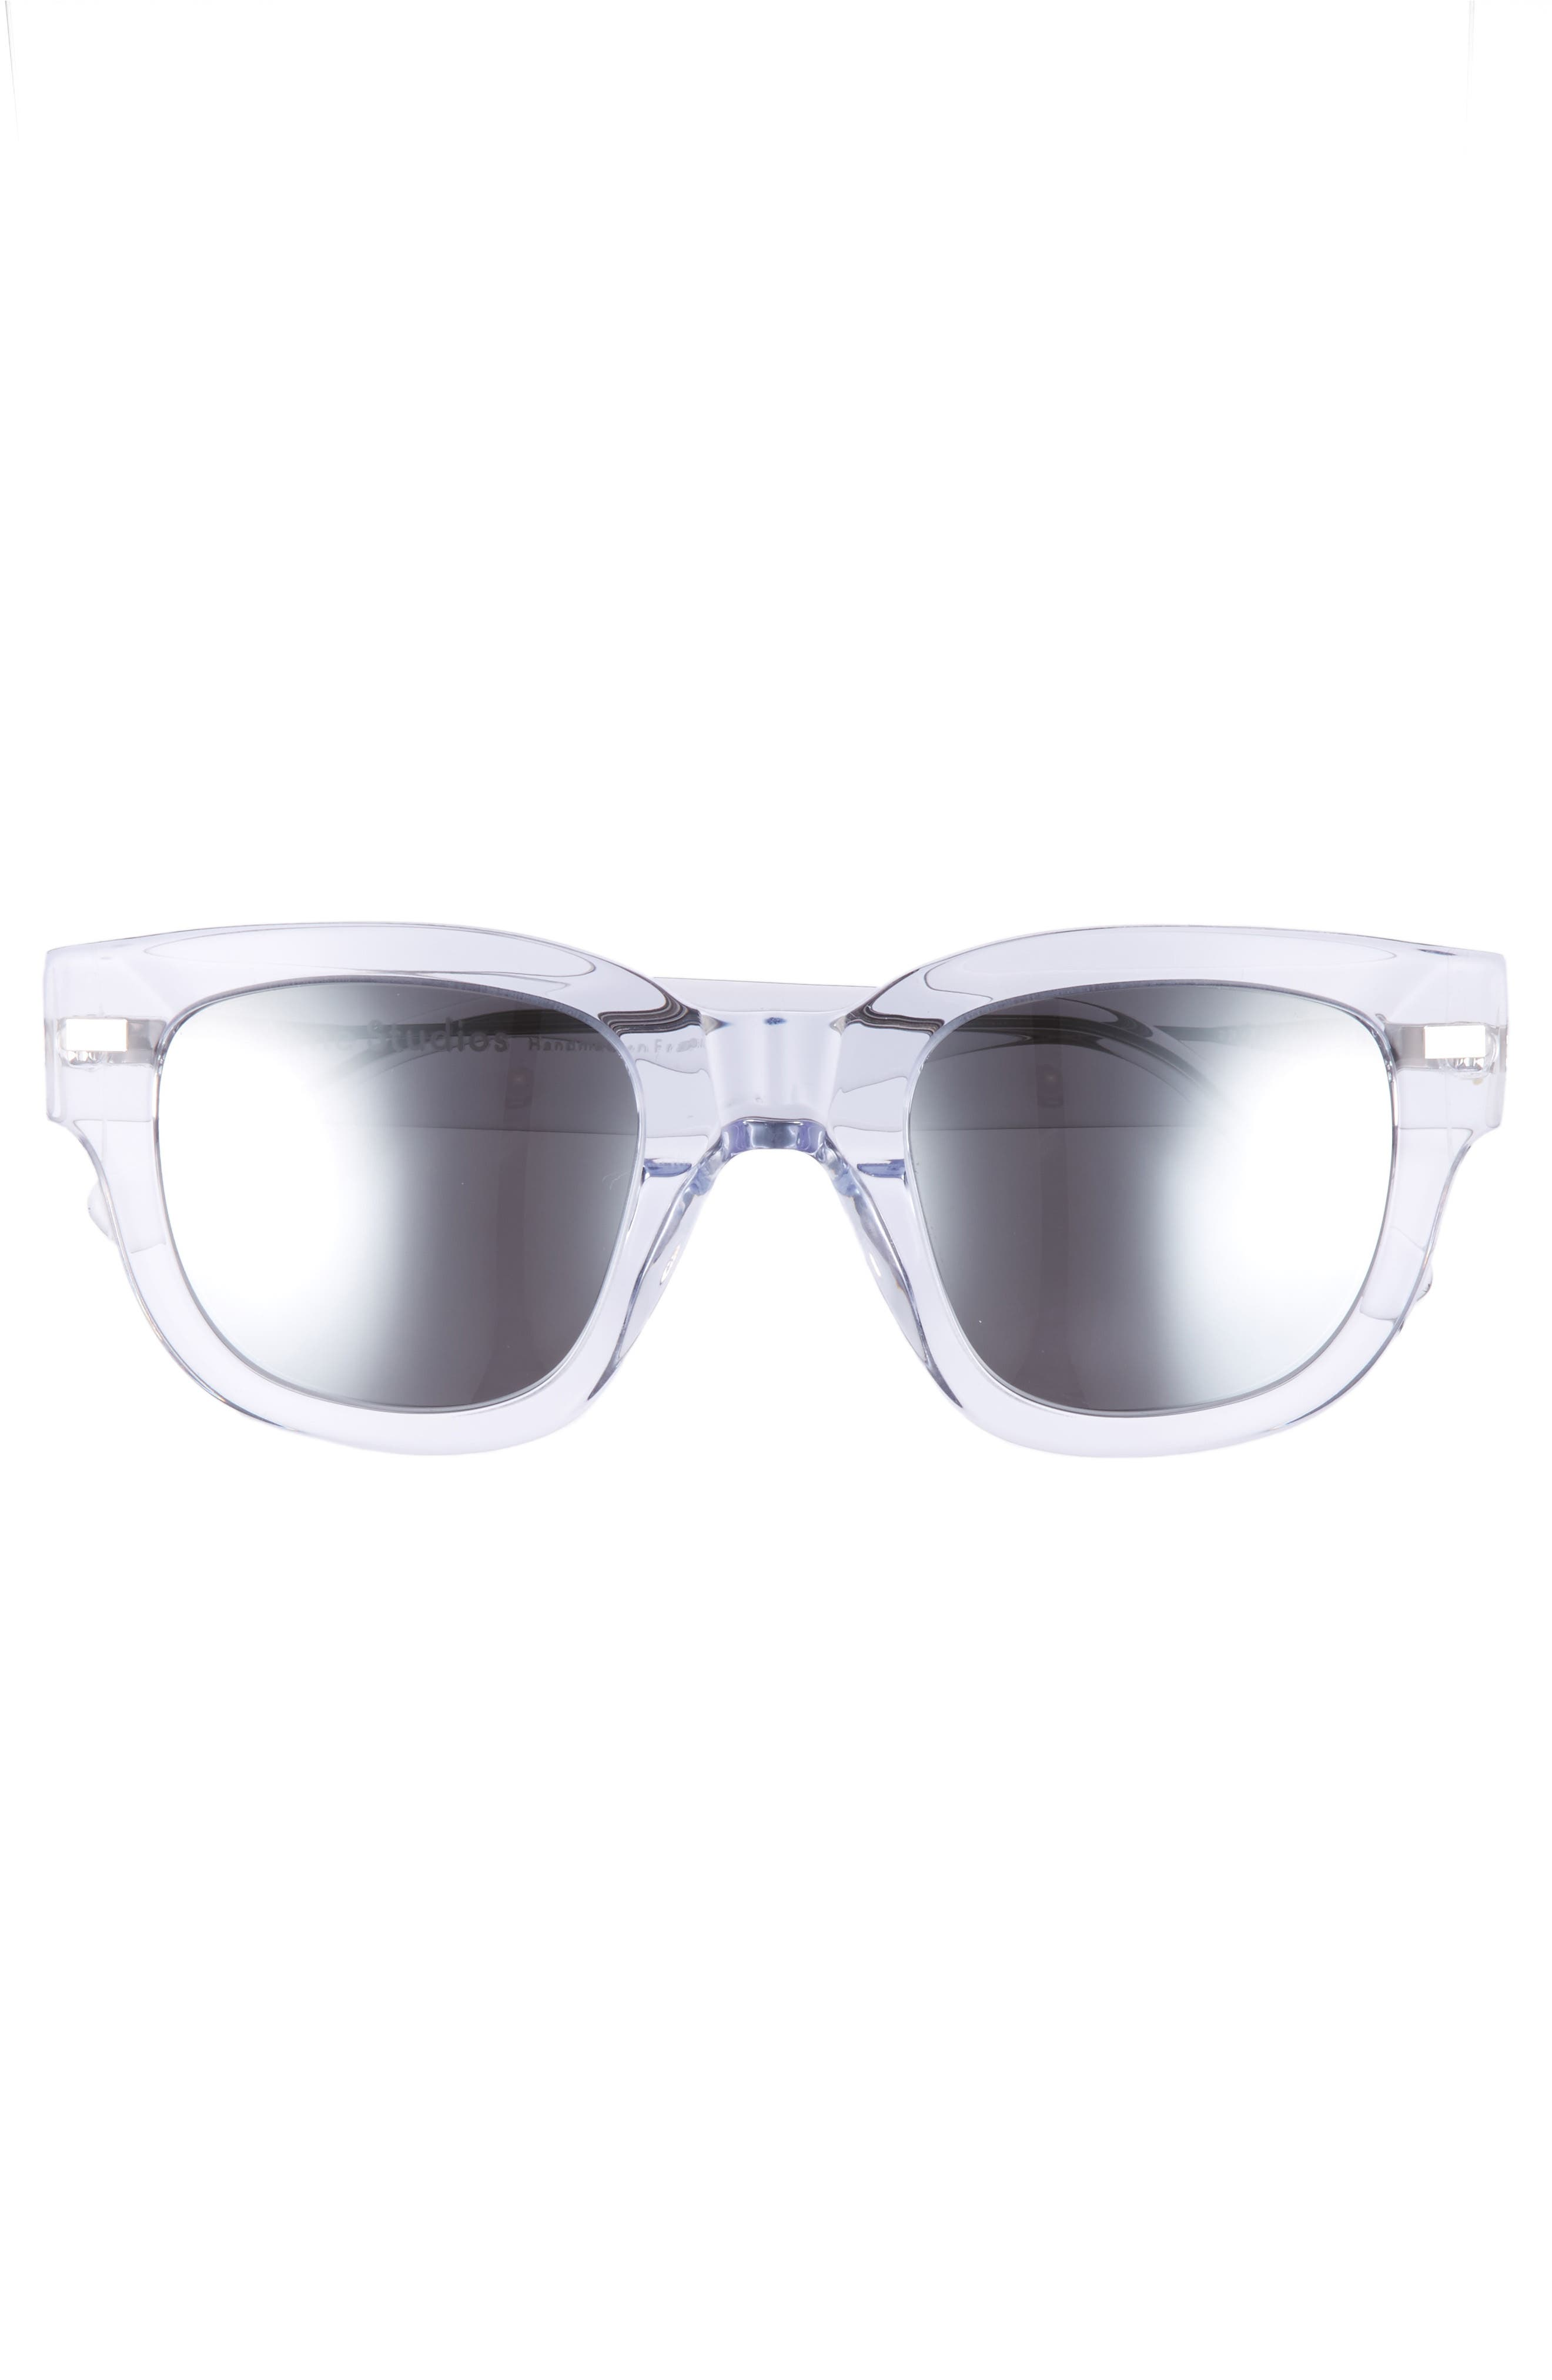 47mm Sunglasses,                             Alternate thumbnail 3, color,                             Clear/ Silver Mirror